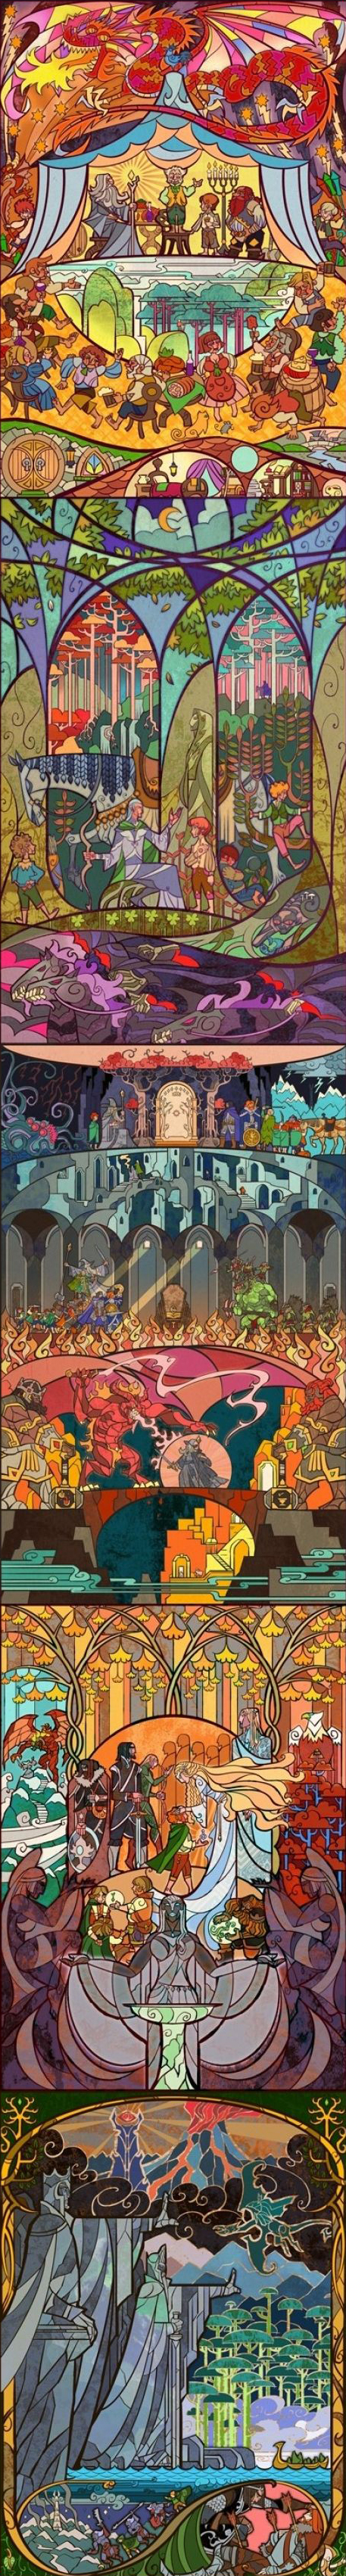 Lord of the Rings stain glass art by Jian Guo http://breath-art.deviantart.com/